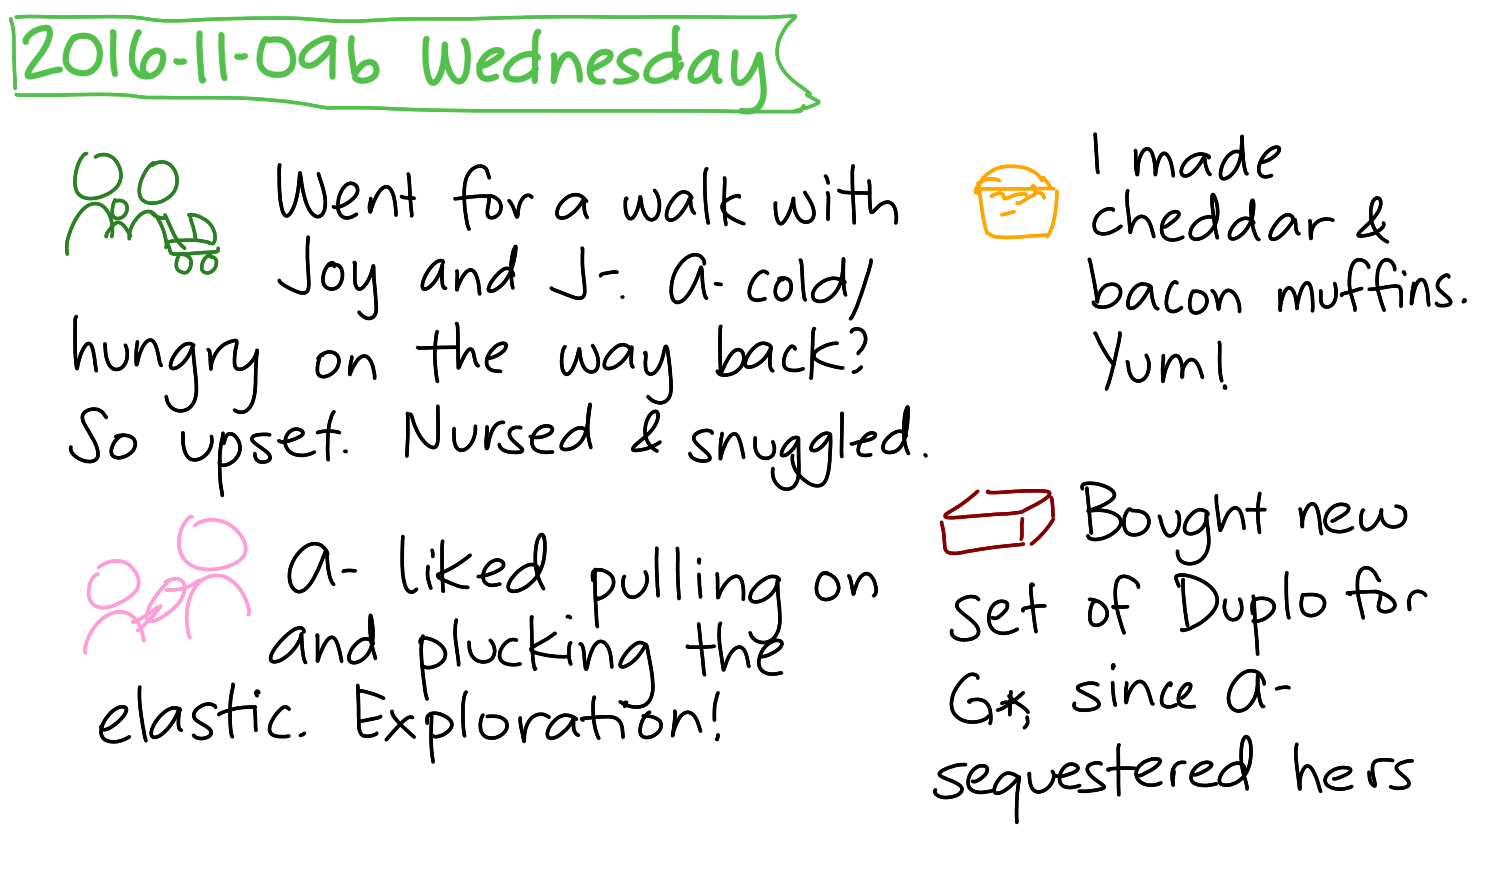 2016-11-09b Wednesday #daily #journal.png